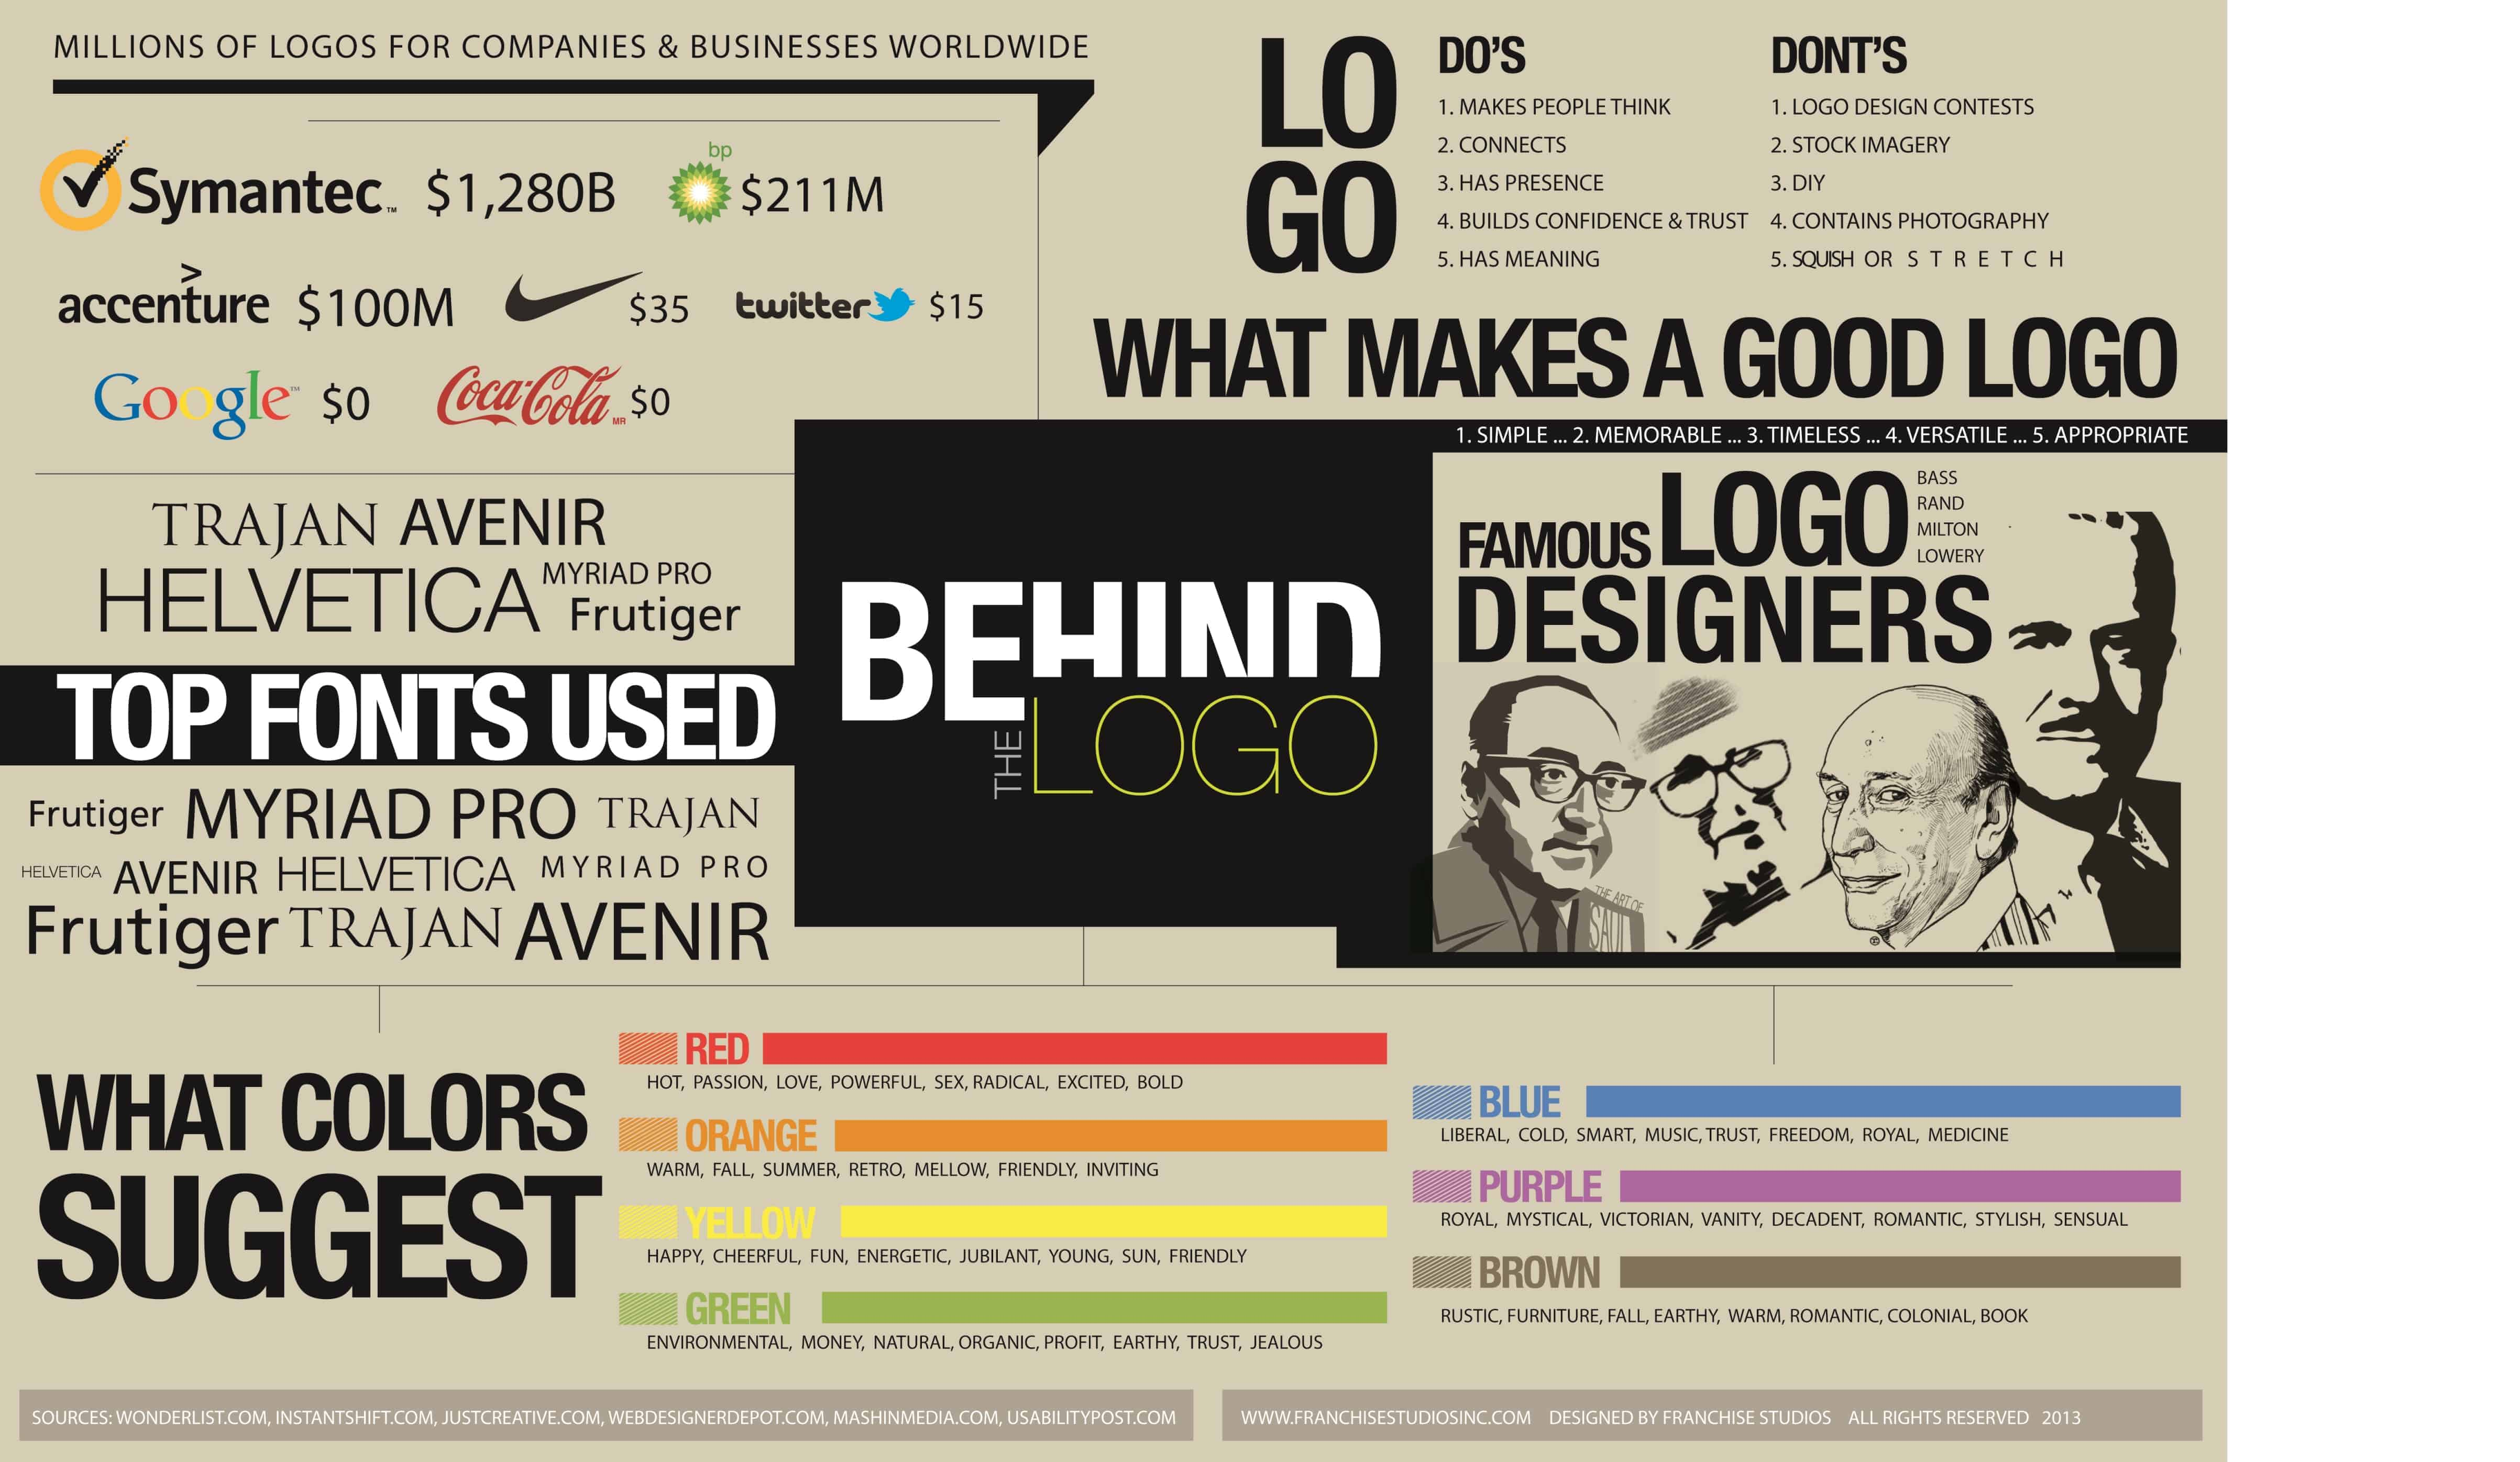 30 cheatsheets & infographics for graphic designers - hongkiat